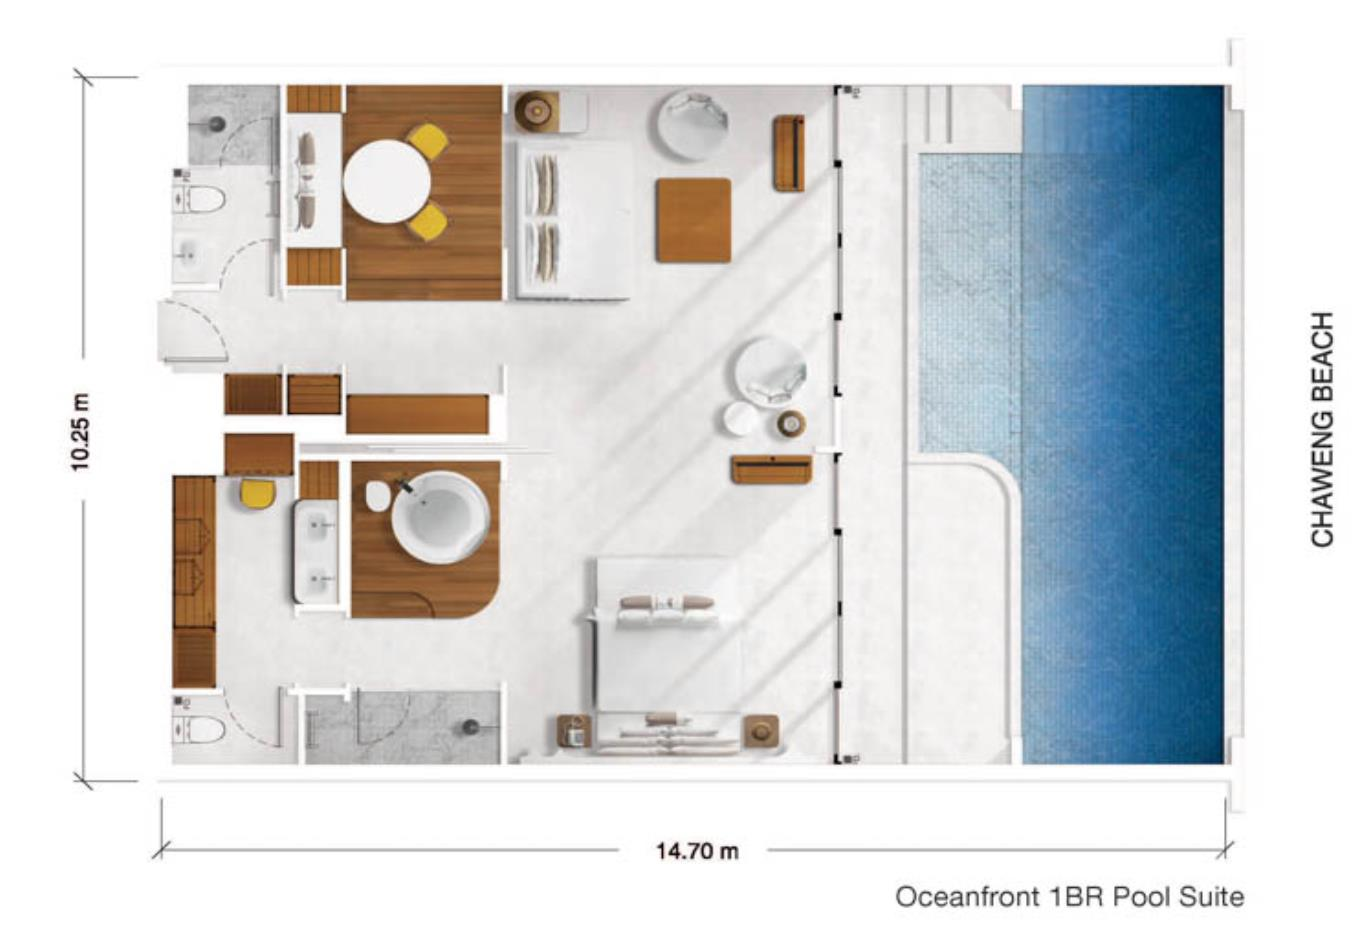 Oceanfront 1BR Pool Suite floorplan